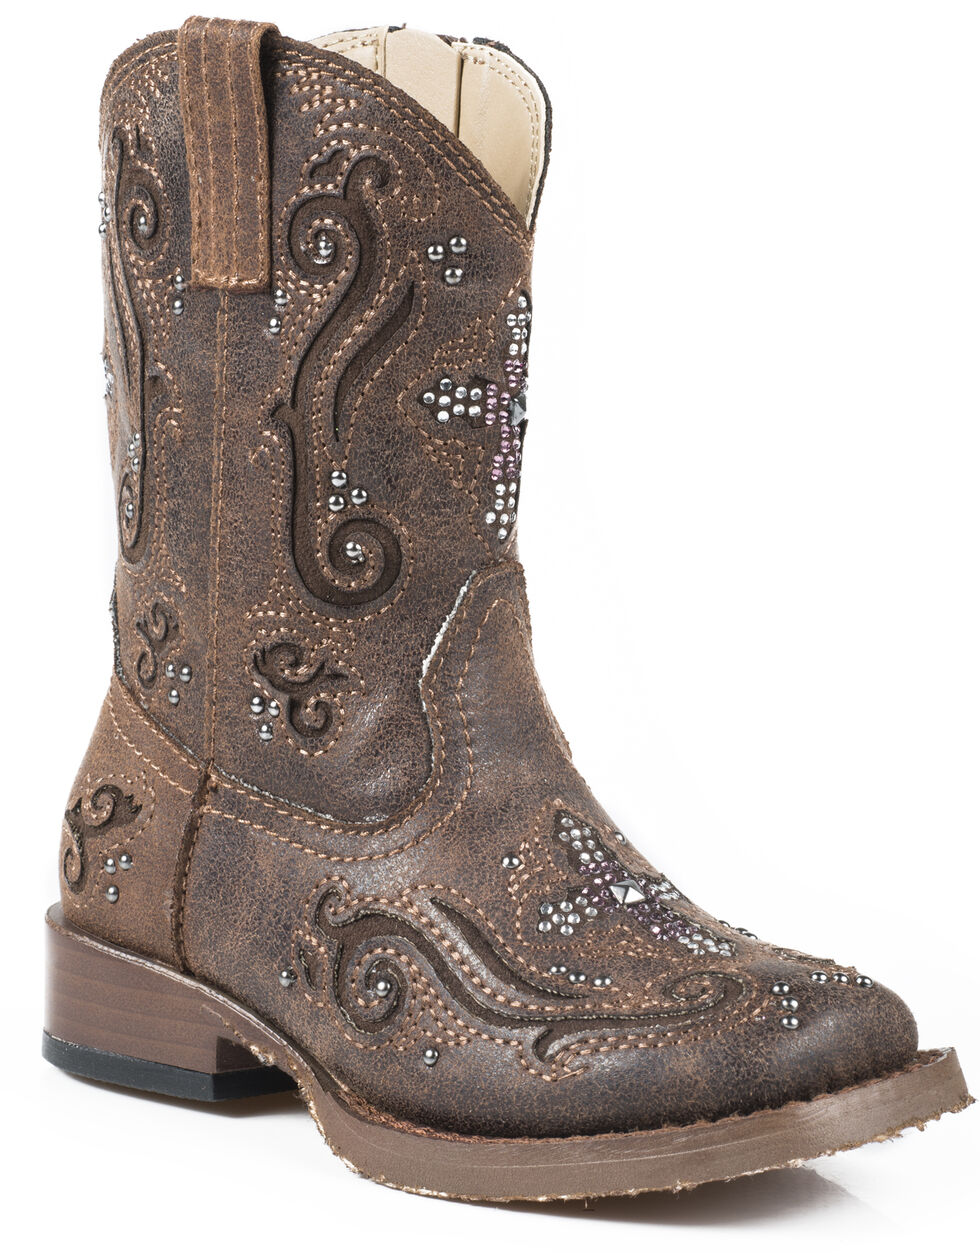 Roper Toddler Girls' Pink Crystal Cross Inlay Cowgirl Boots - Square Toe, Brown, hi-res